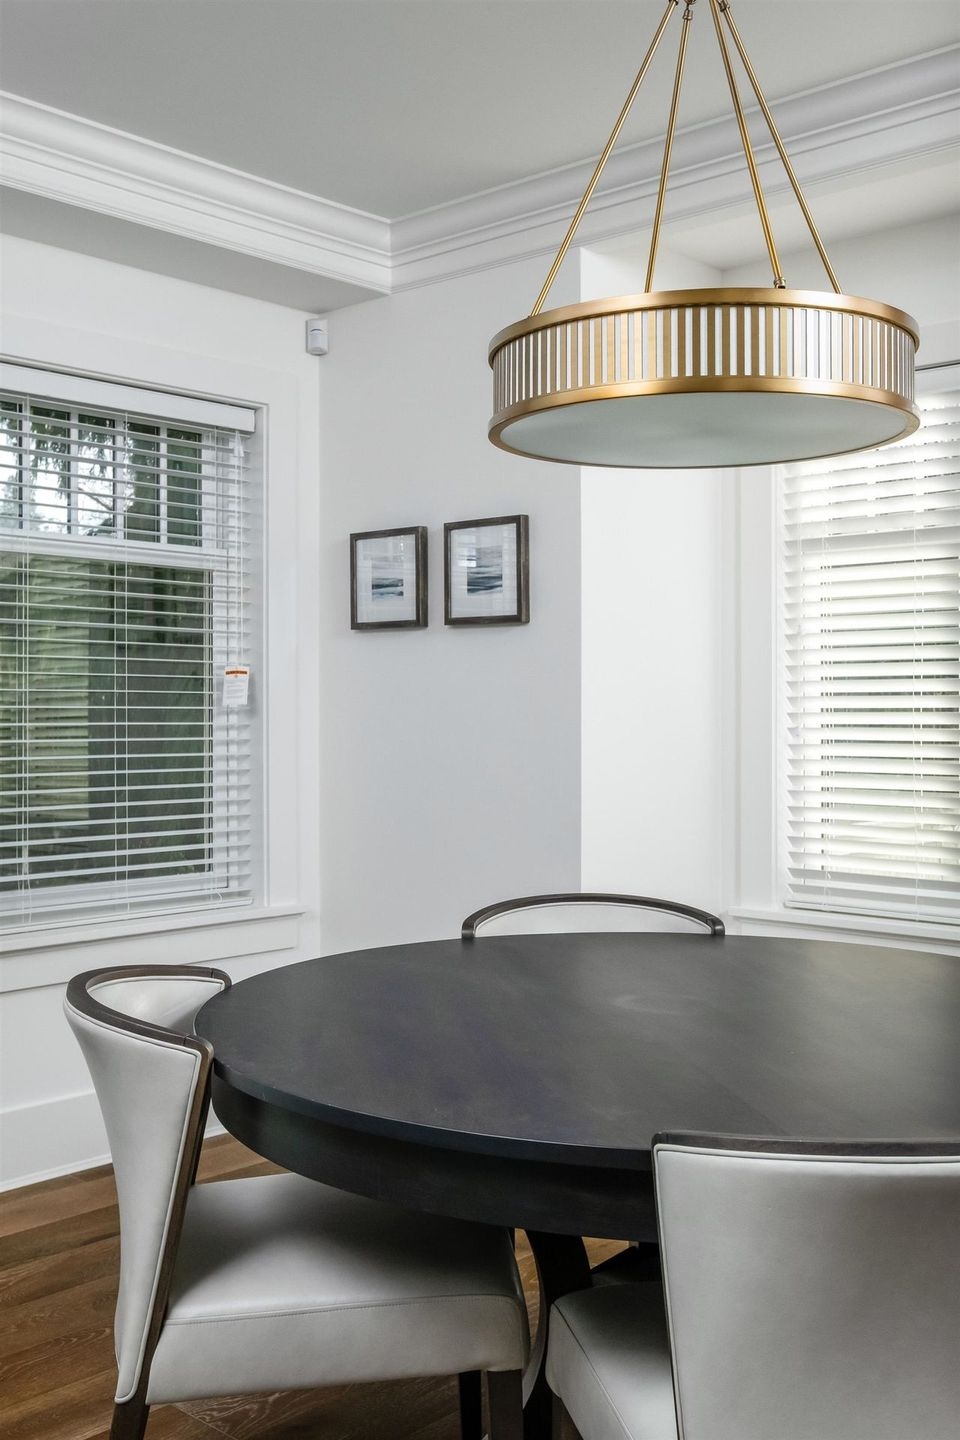 1775-w-16th-avenue-fairview-vw-vancouver-west-09 at